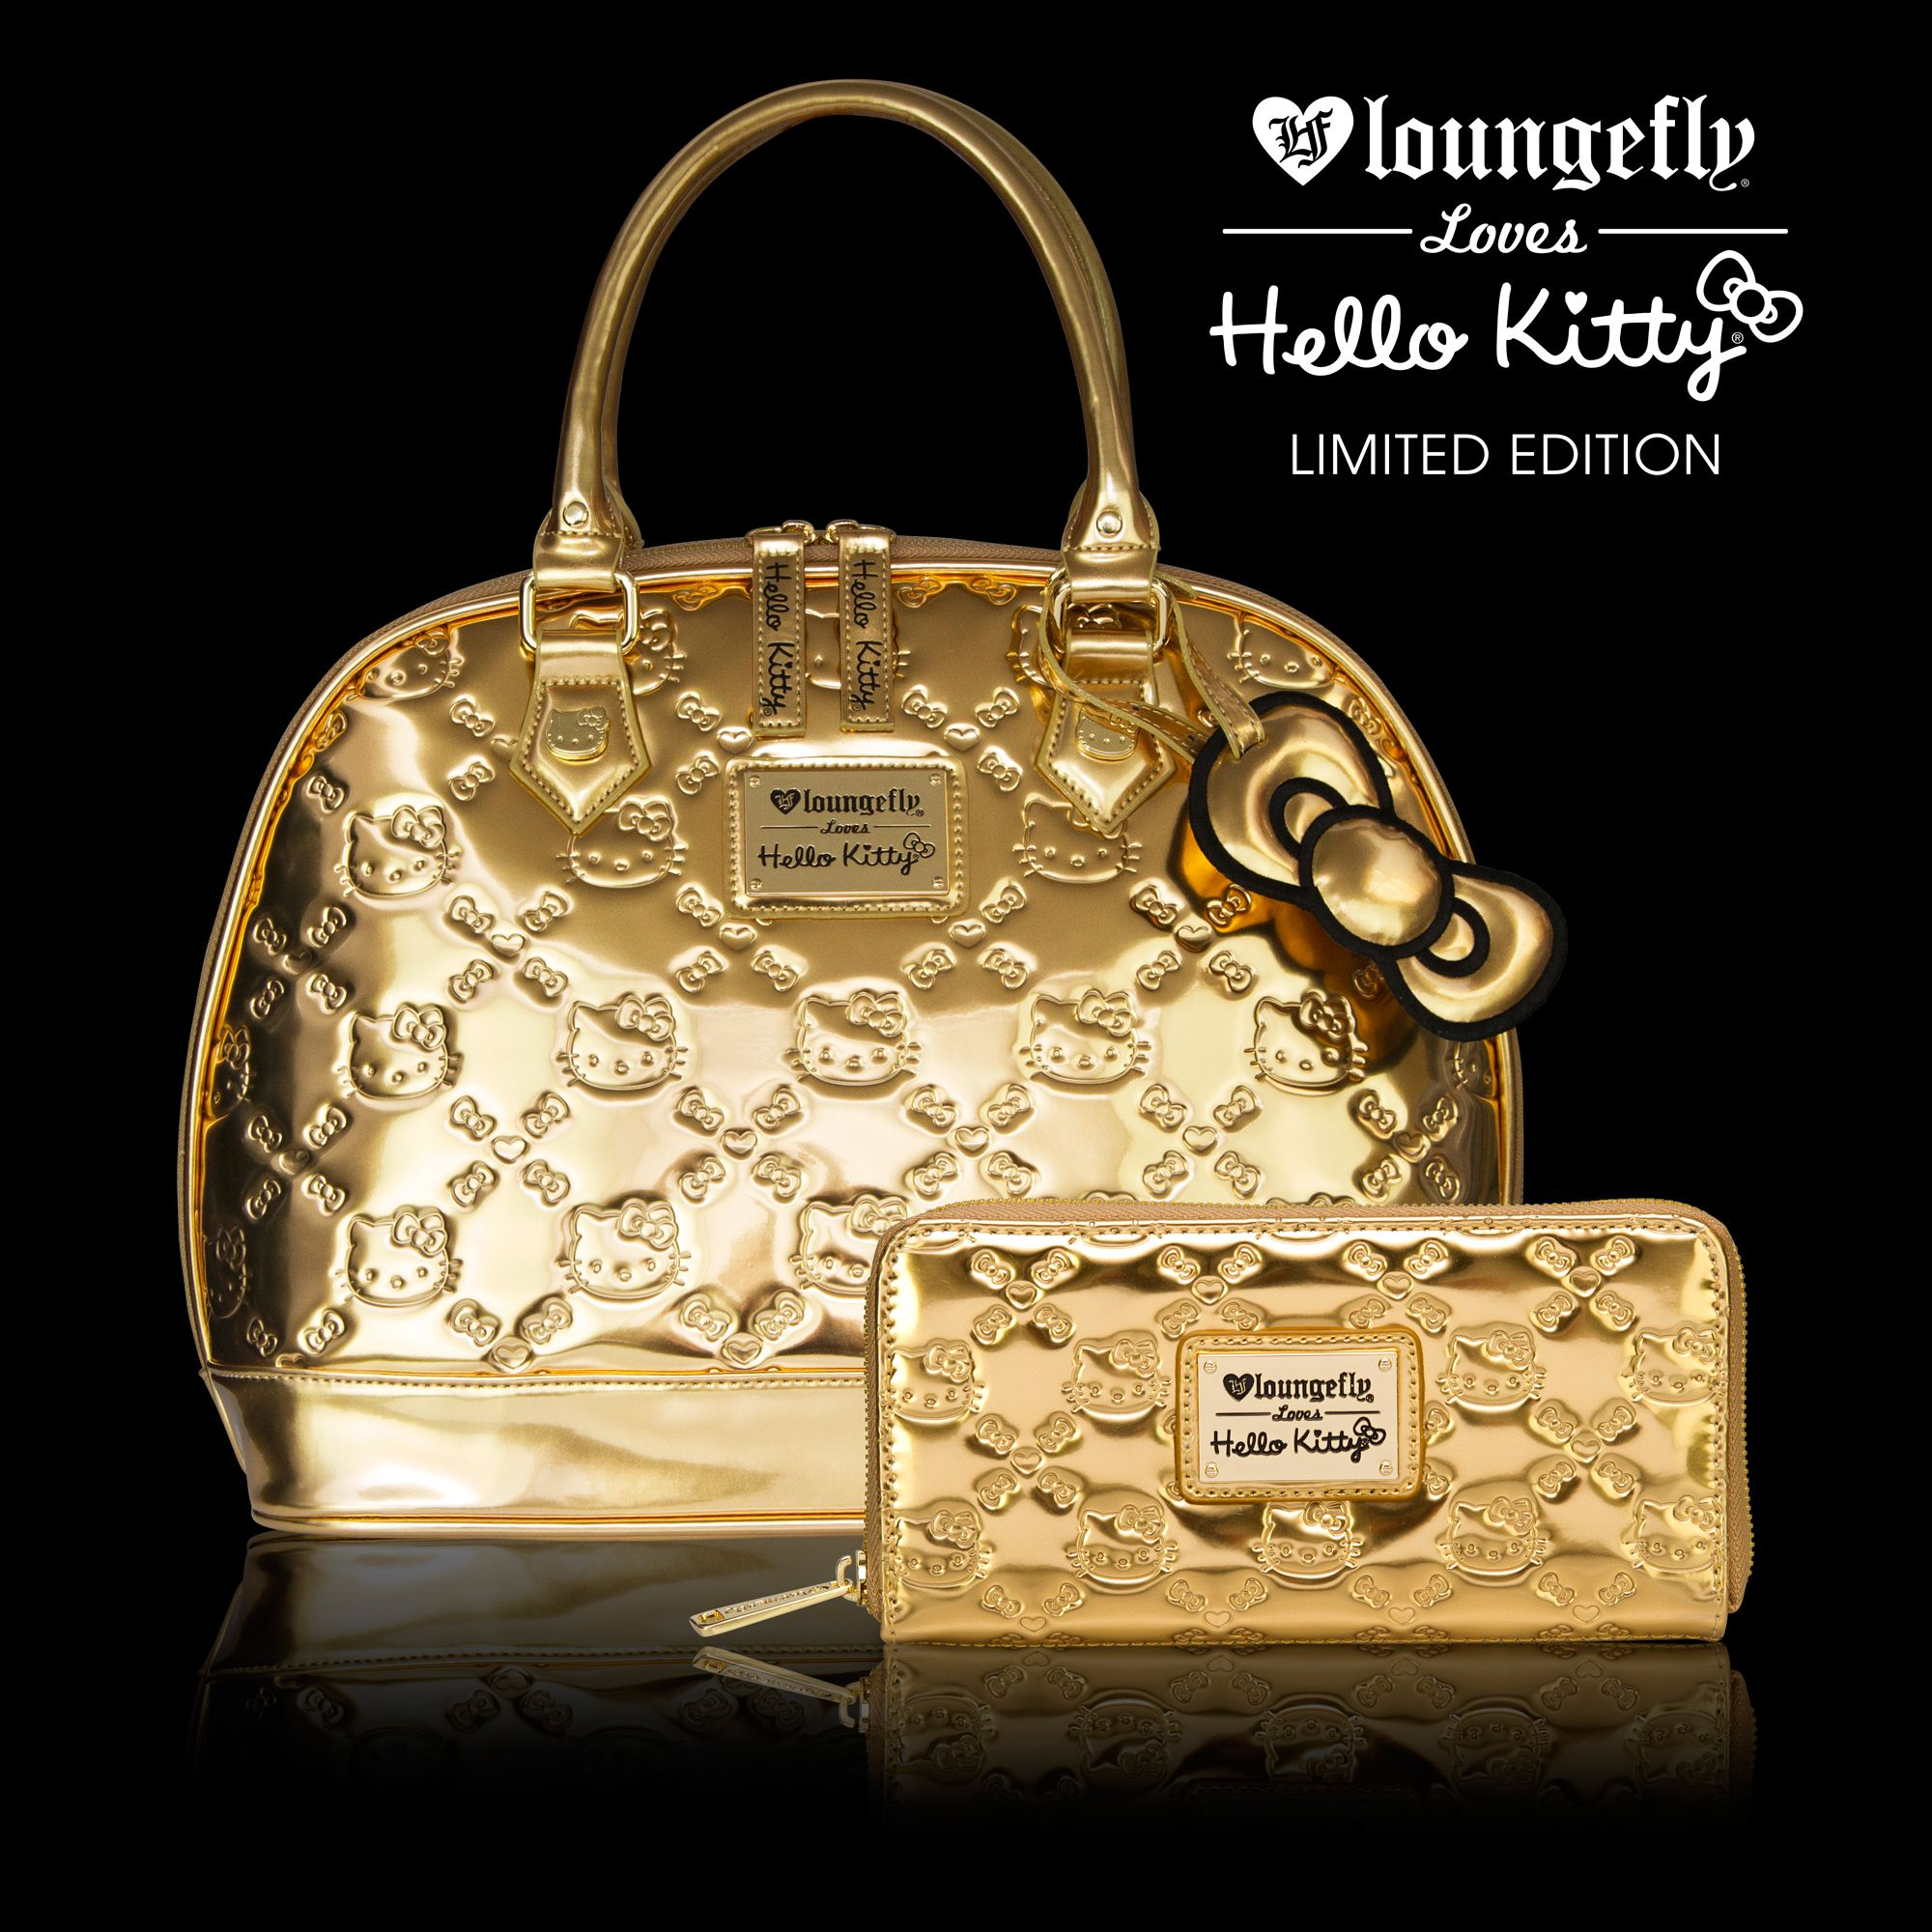 7ce8c5d02 Exclusive, limited edition Loungefly x Hello Kitty bags, individually  numbered for Hello Kitty Con.